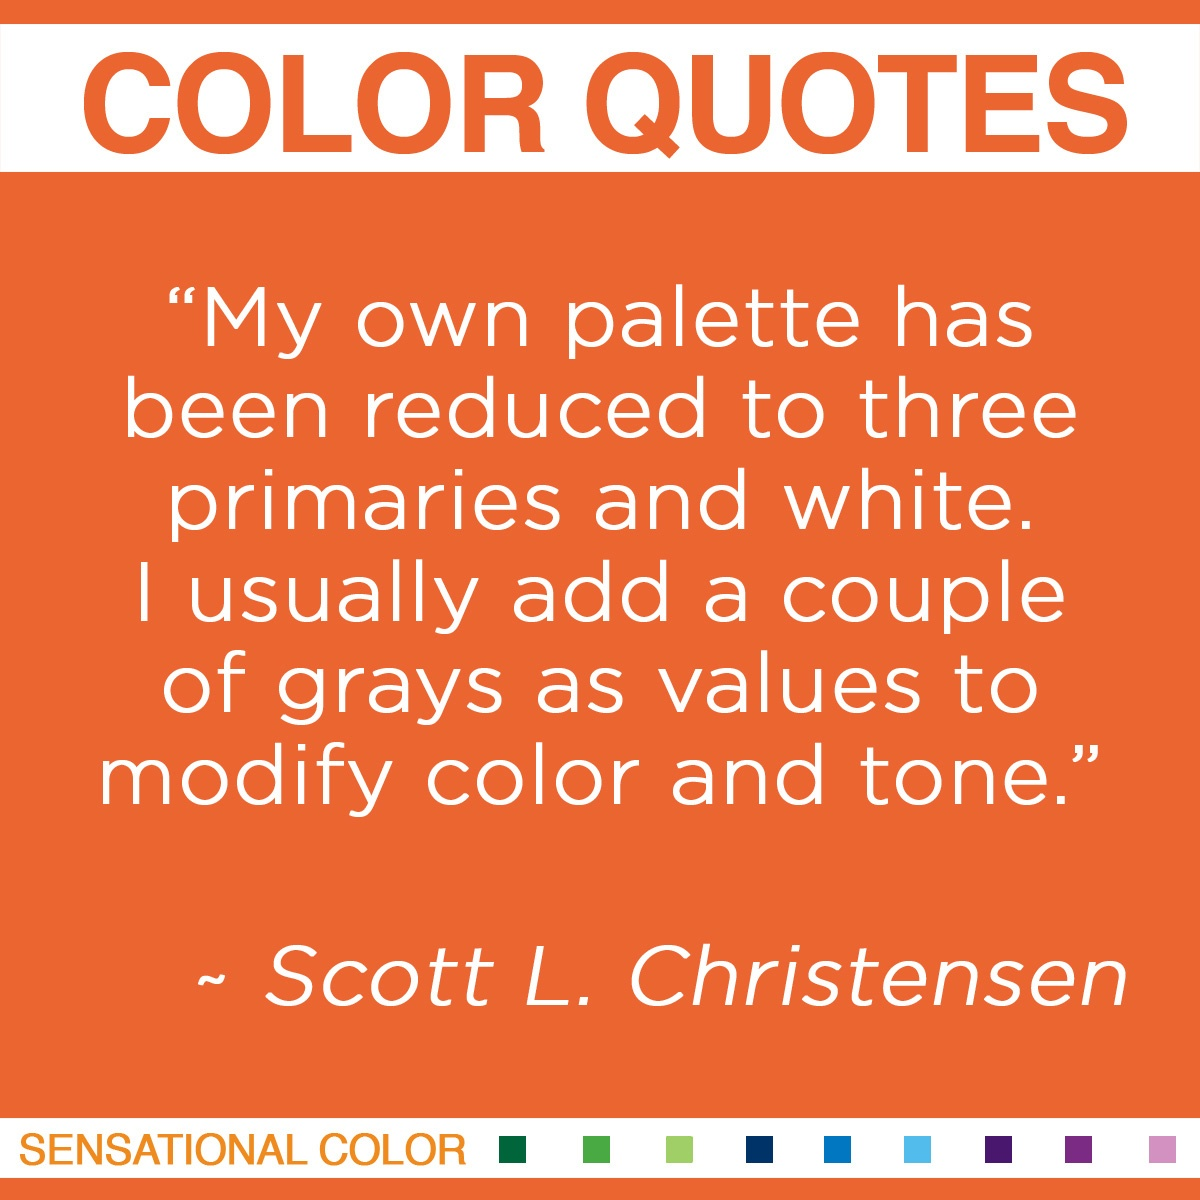 """My own palette has been reduced to three primaries and white. I usually add a couple of grays as values to modify color and tone.""  - Scott L. Christensen"